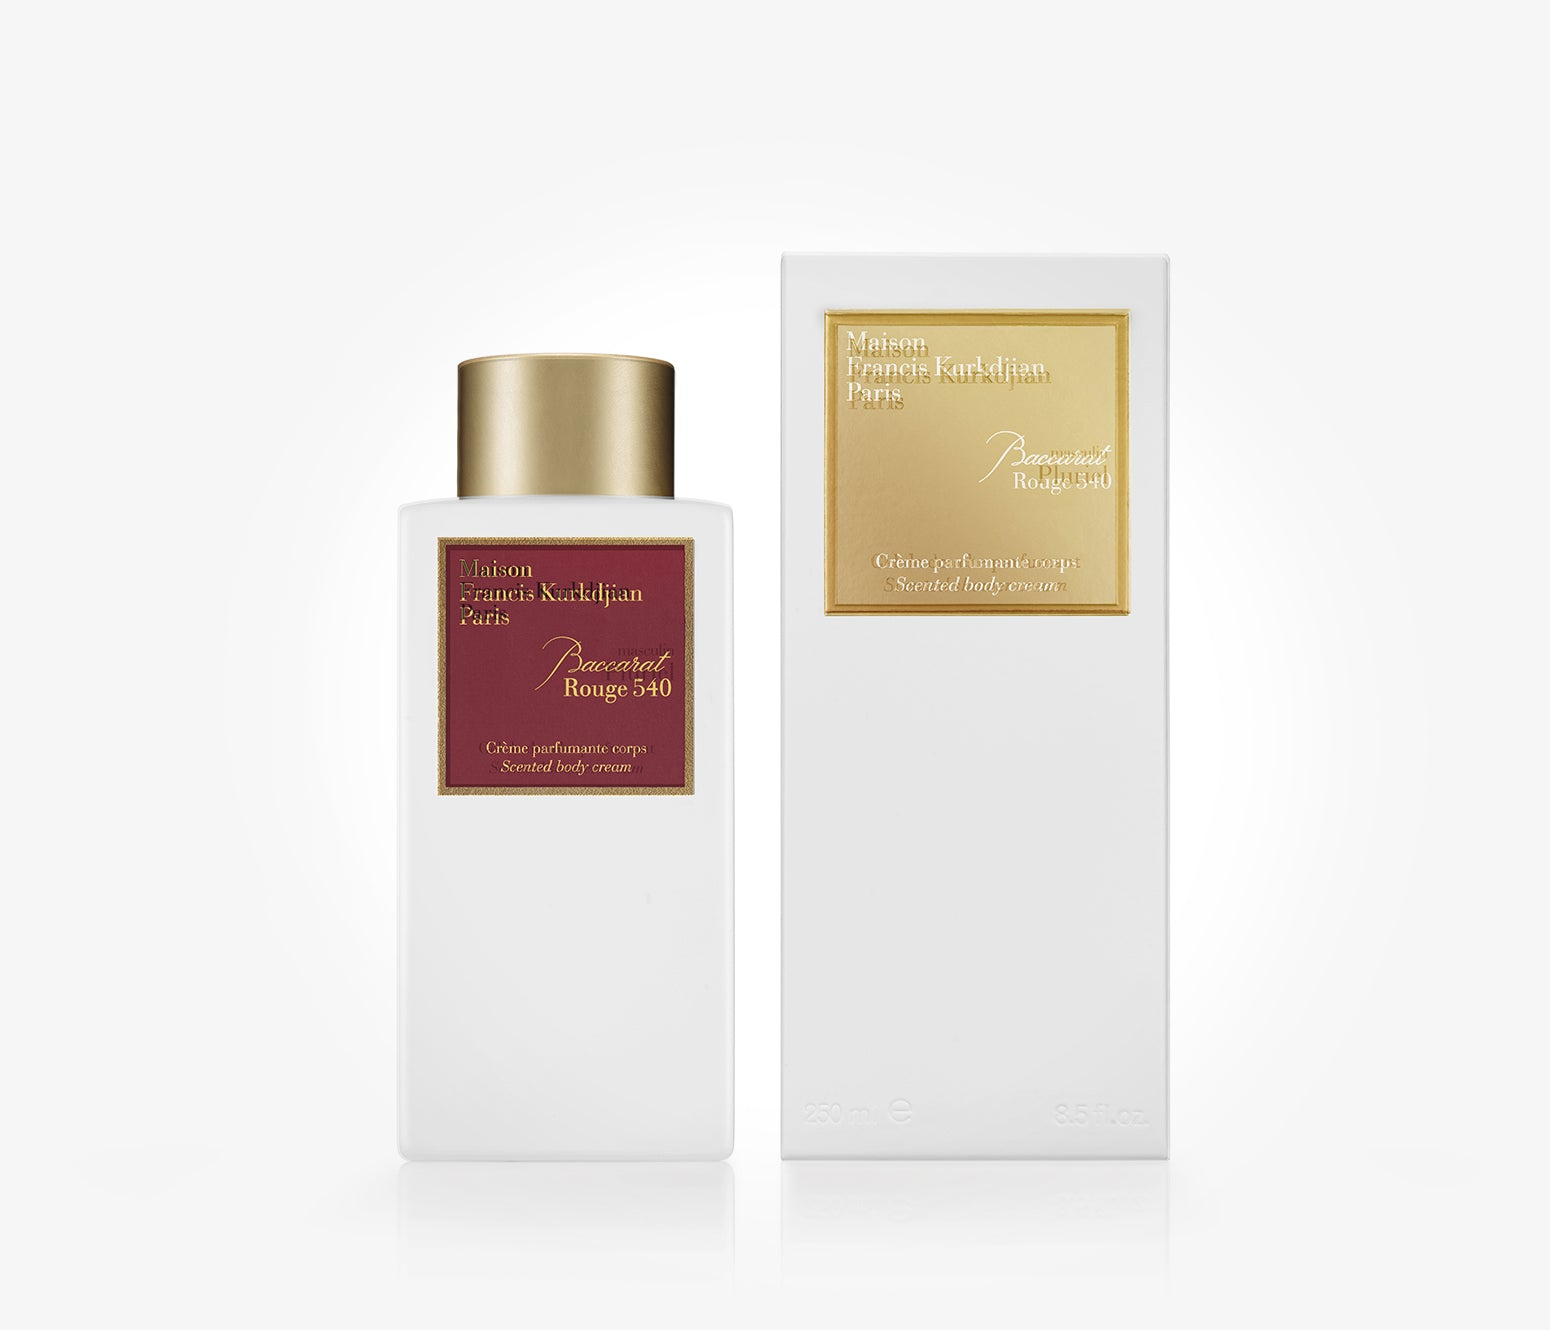 Maison Francis Kurkdjian - Baccarat Rouge 540 Scented Body Cream - 250ml - MCY1300 - product image - Body Cream - Les Senteurs